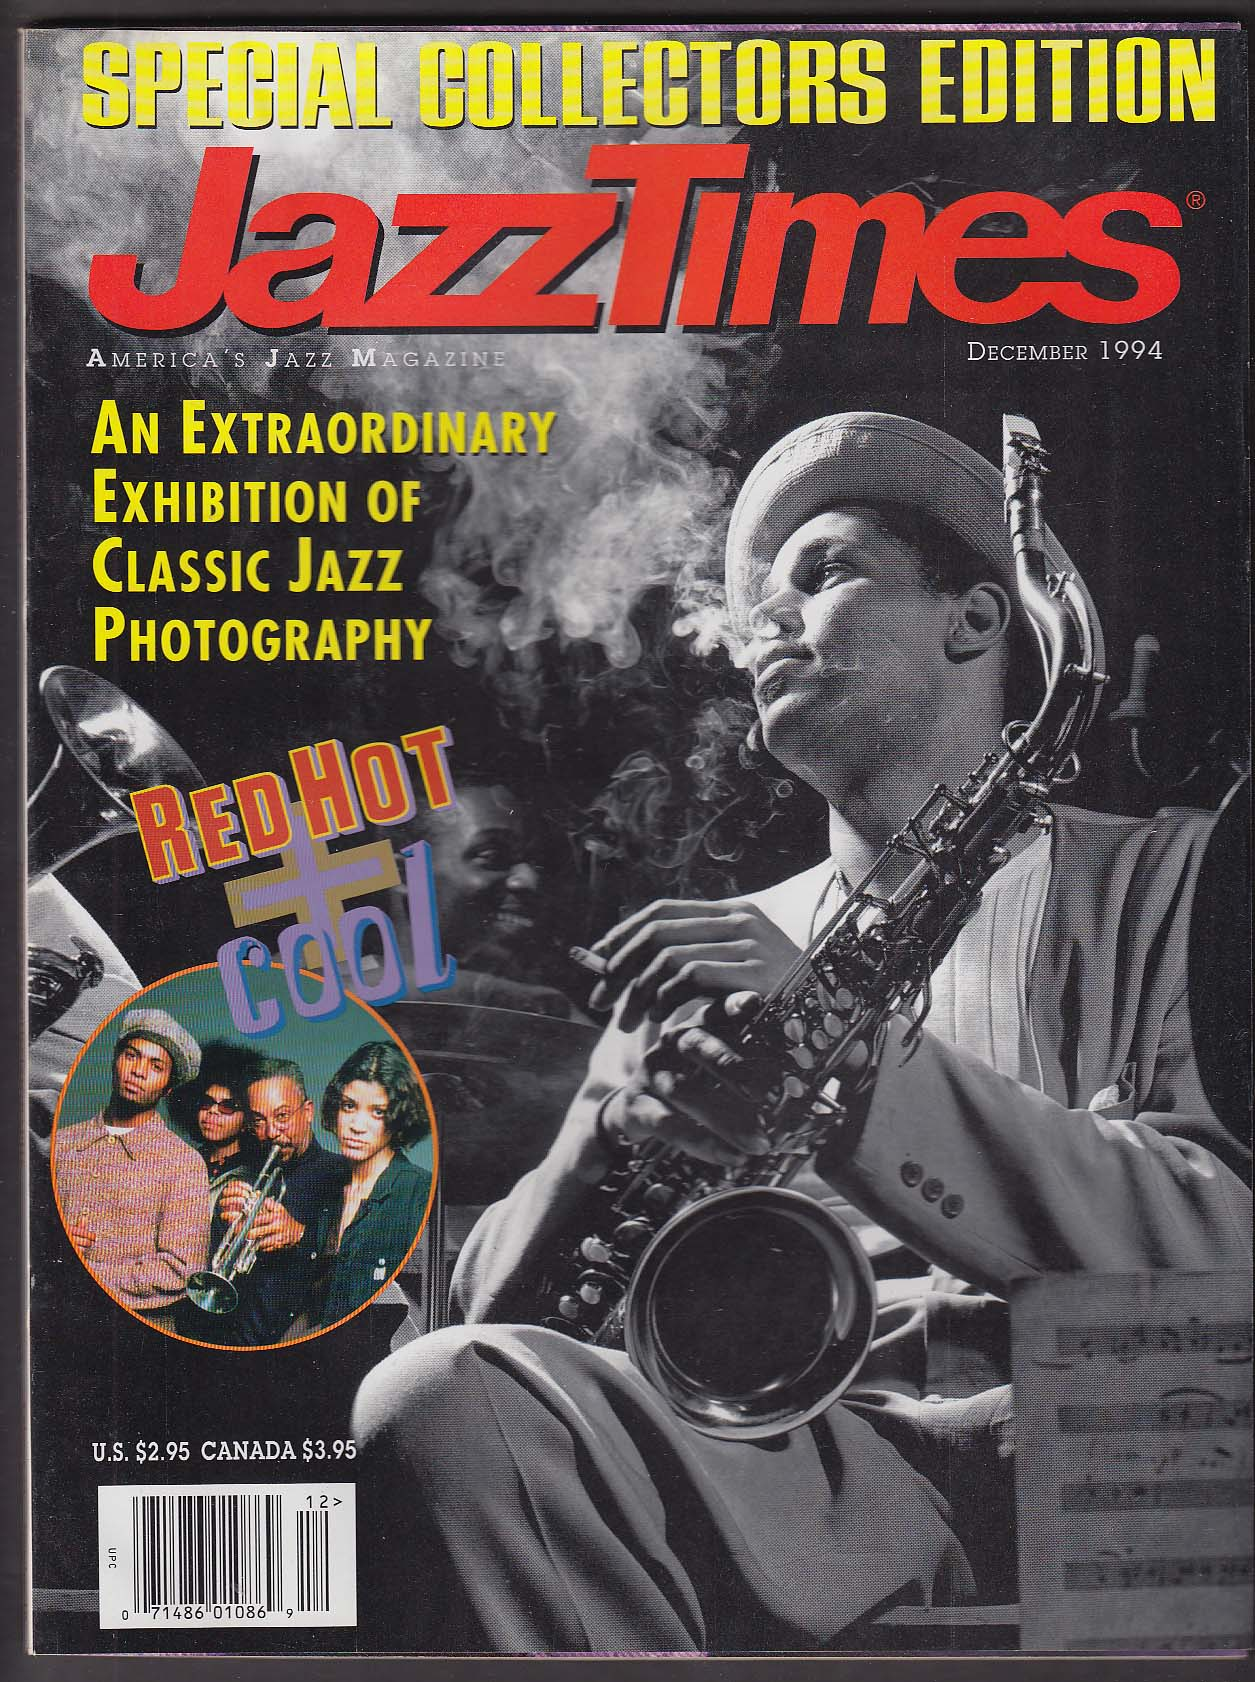 JAZZ TIMES Red Hot + Cool Sonny Fortune Eddie Daniels Leonard Feather 12 1994